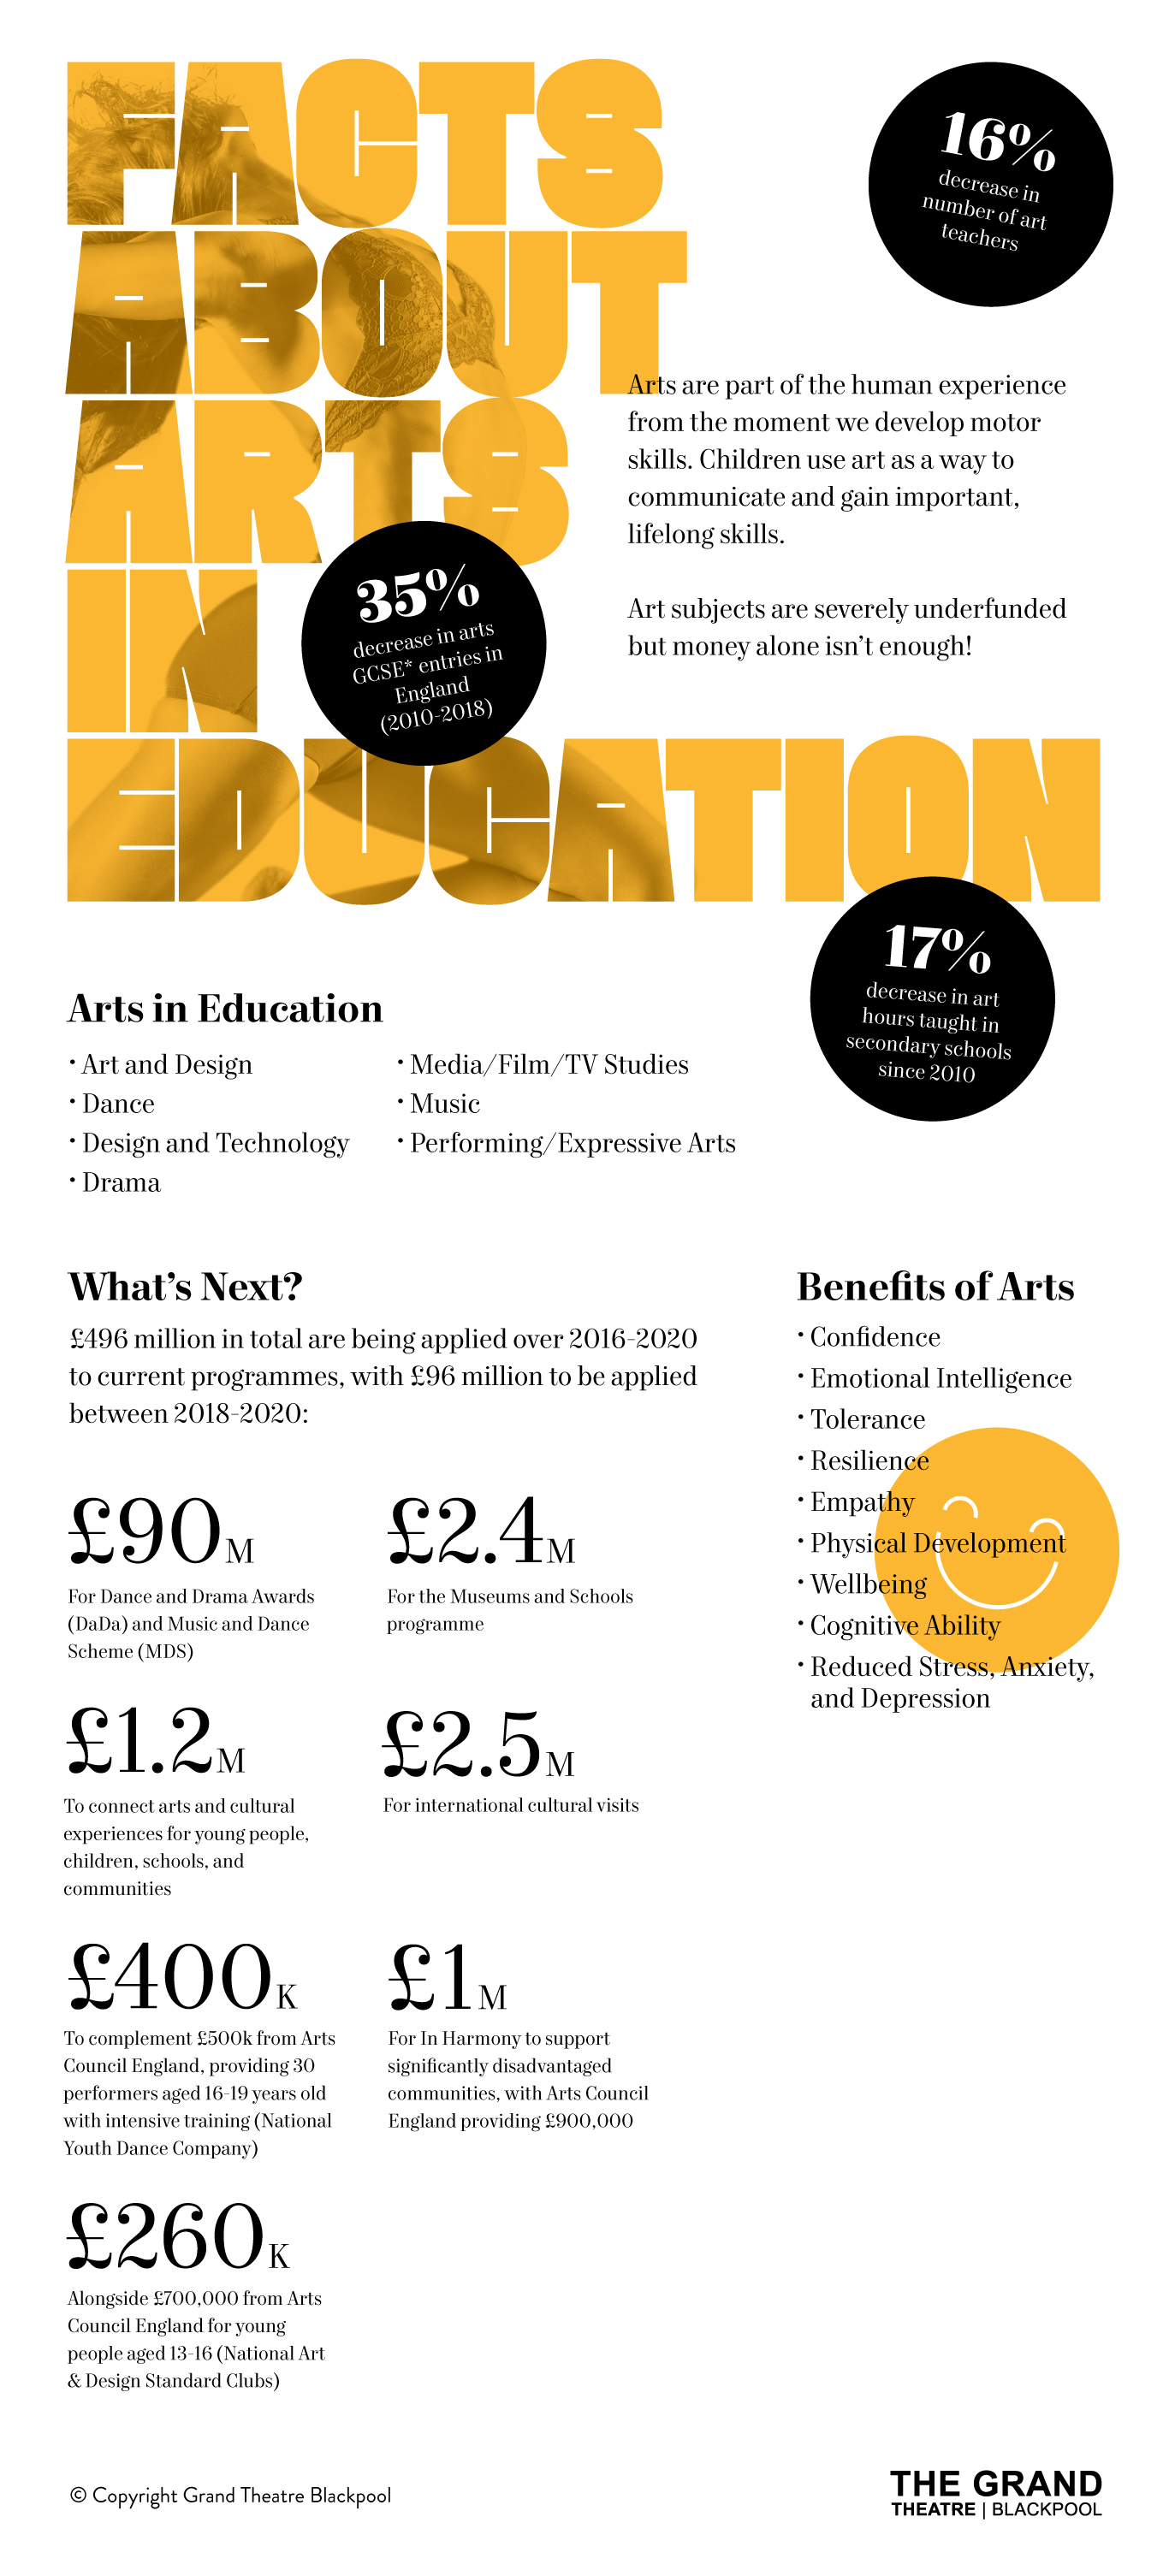 Arts In Education | Blackpool Grand